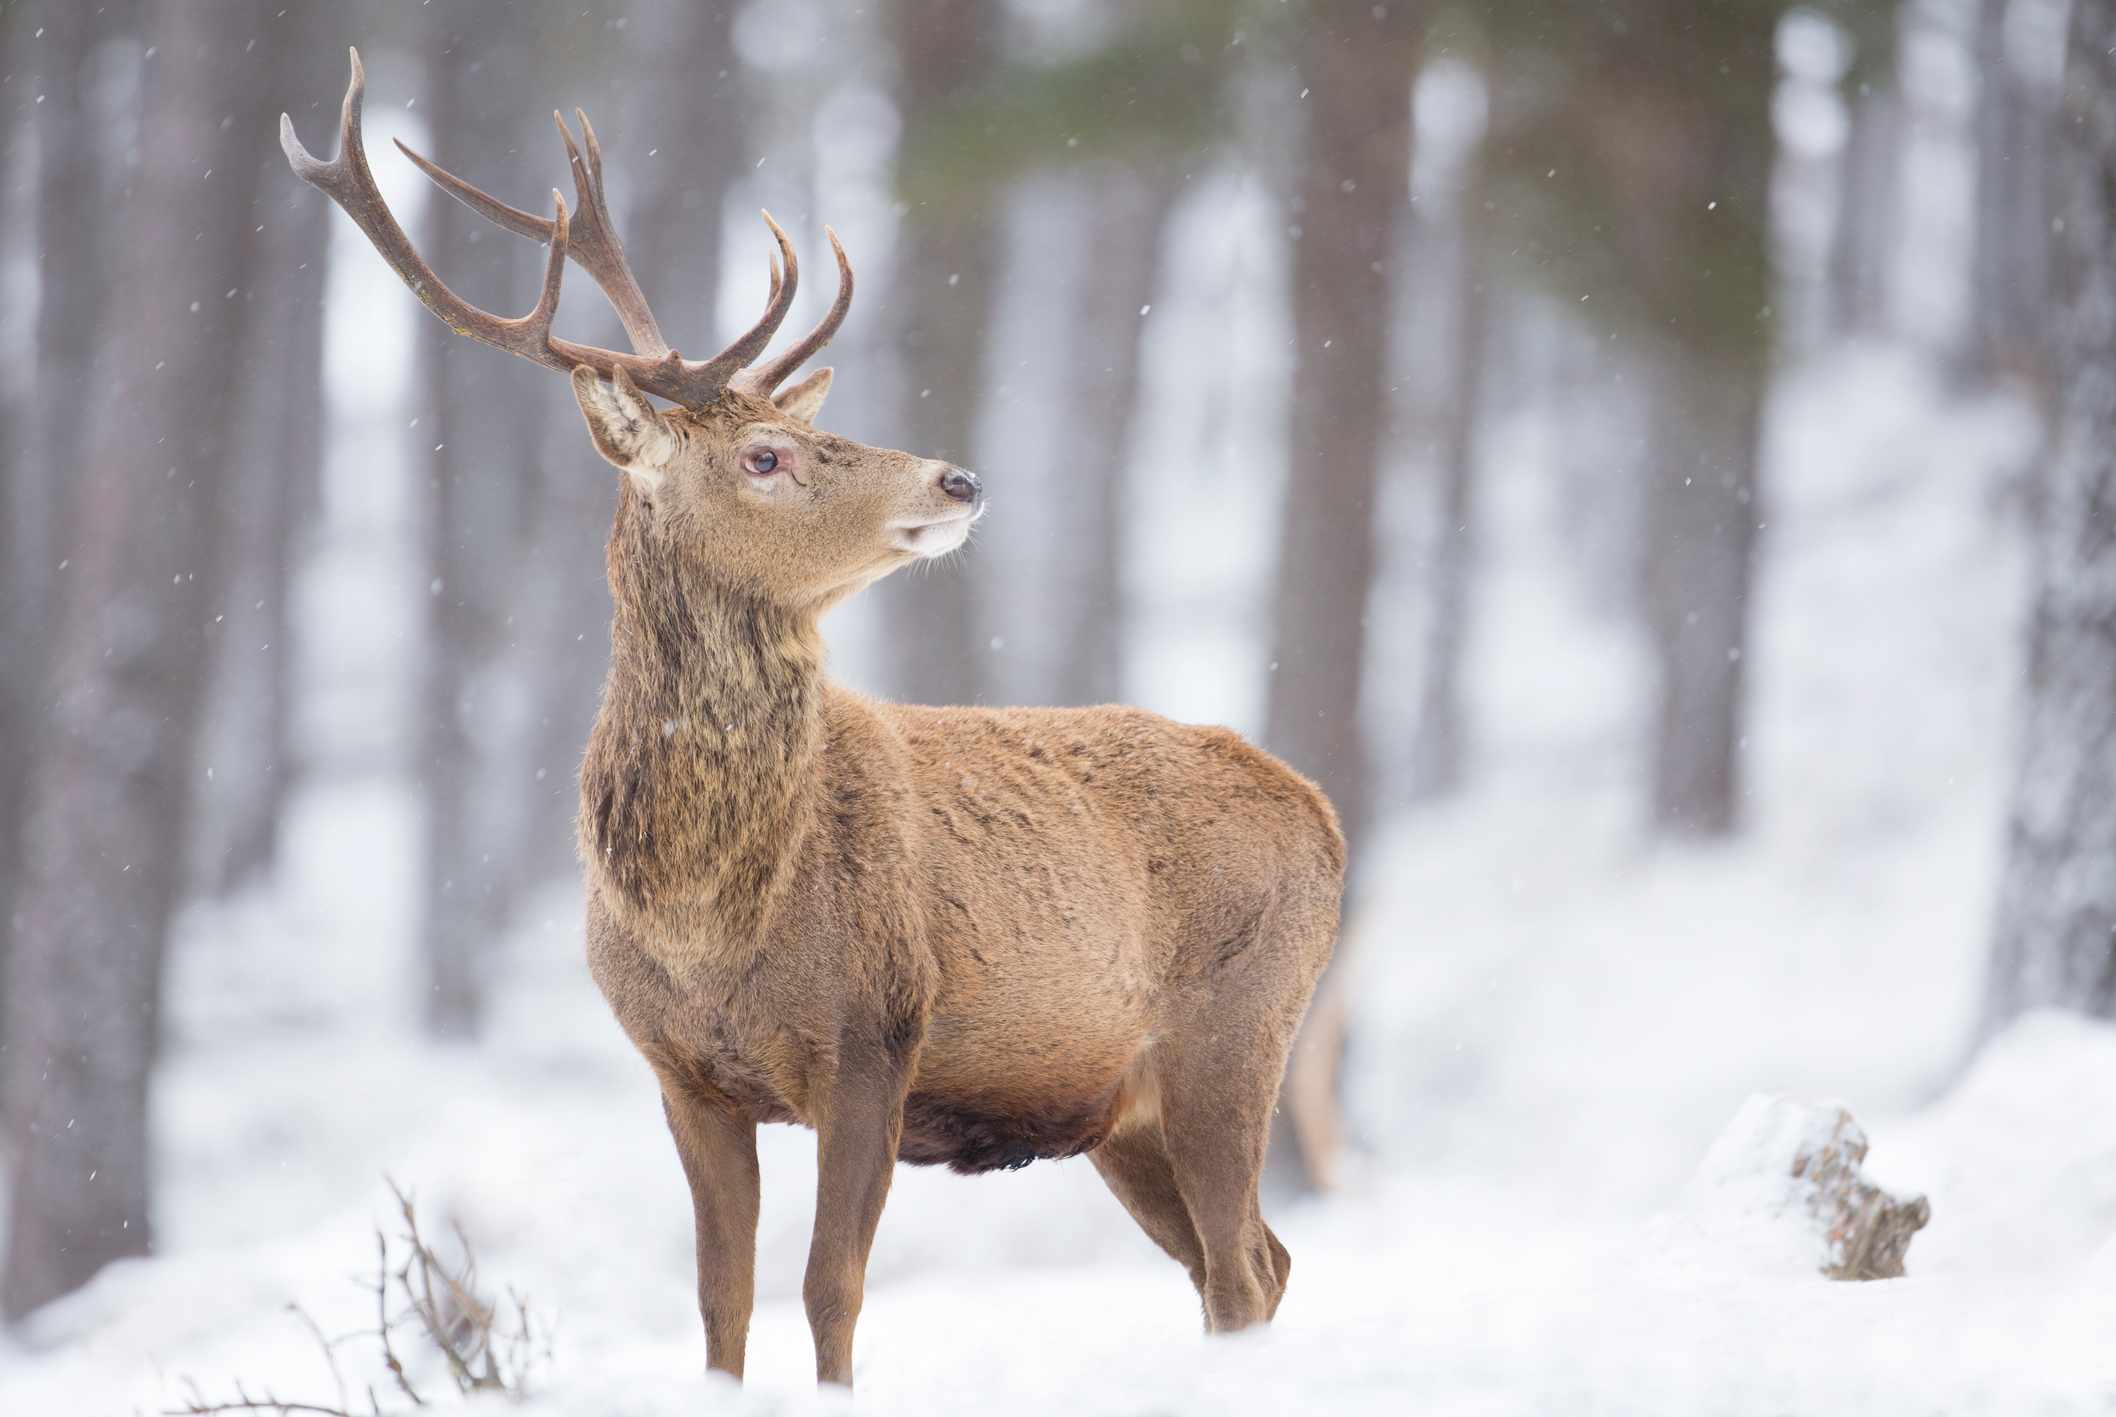 Red deer in the snow in the Scottish Highlands. © James Silverthorne/Getty